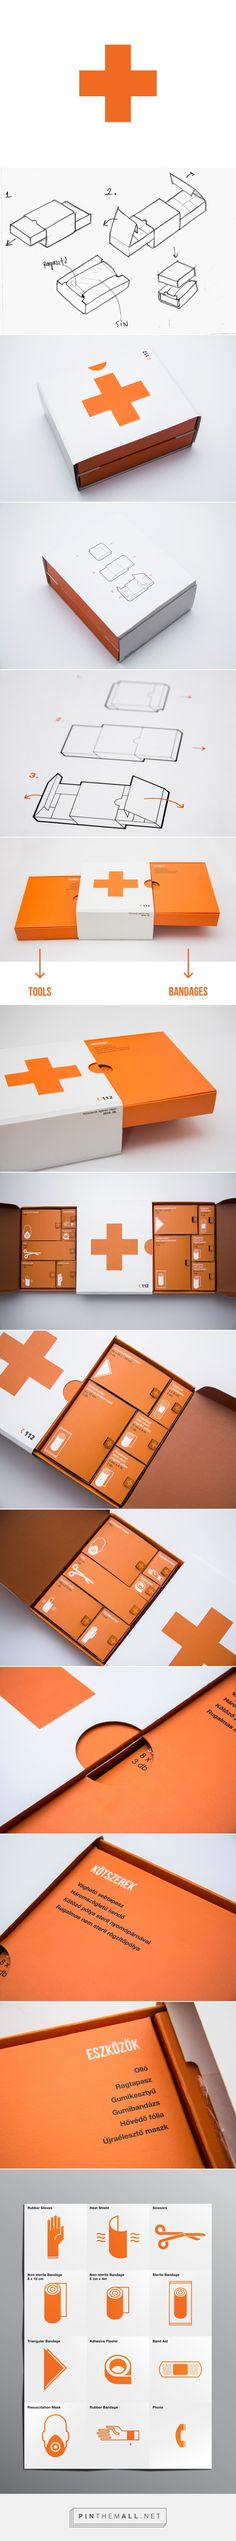 First Aid Kit Redesigned (Student Project) on Packaging of the World - Creative Package Design Gallery. - a grouped images picture Drug Packaging, Medical Packaging, Print Packaging, Leaflet Design, Medical Design, Newsletter Design, Layout, First Aid Kit, Board Game Design